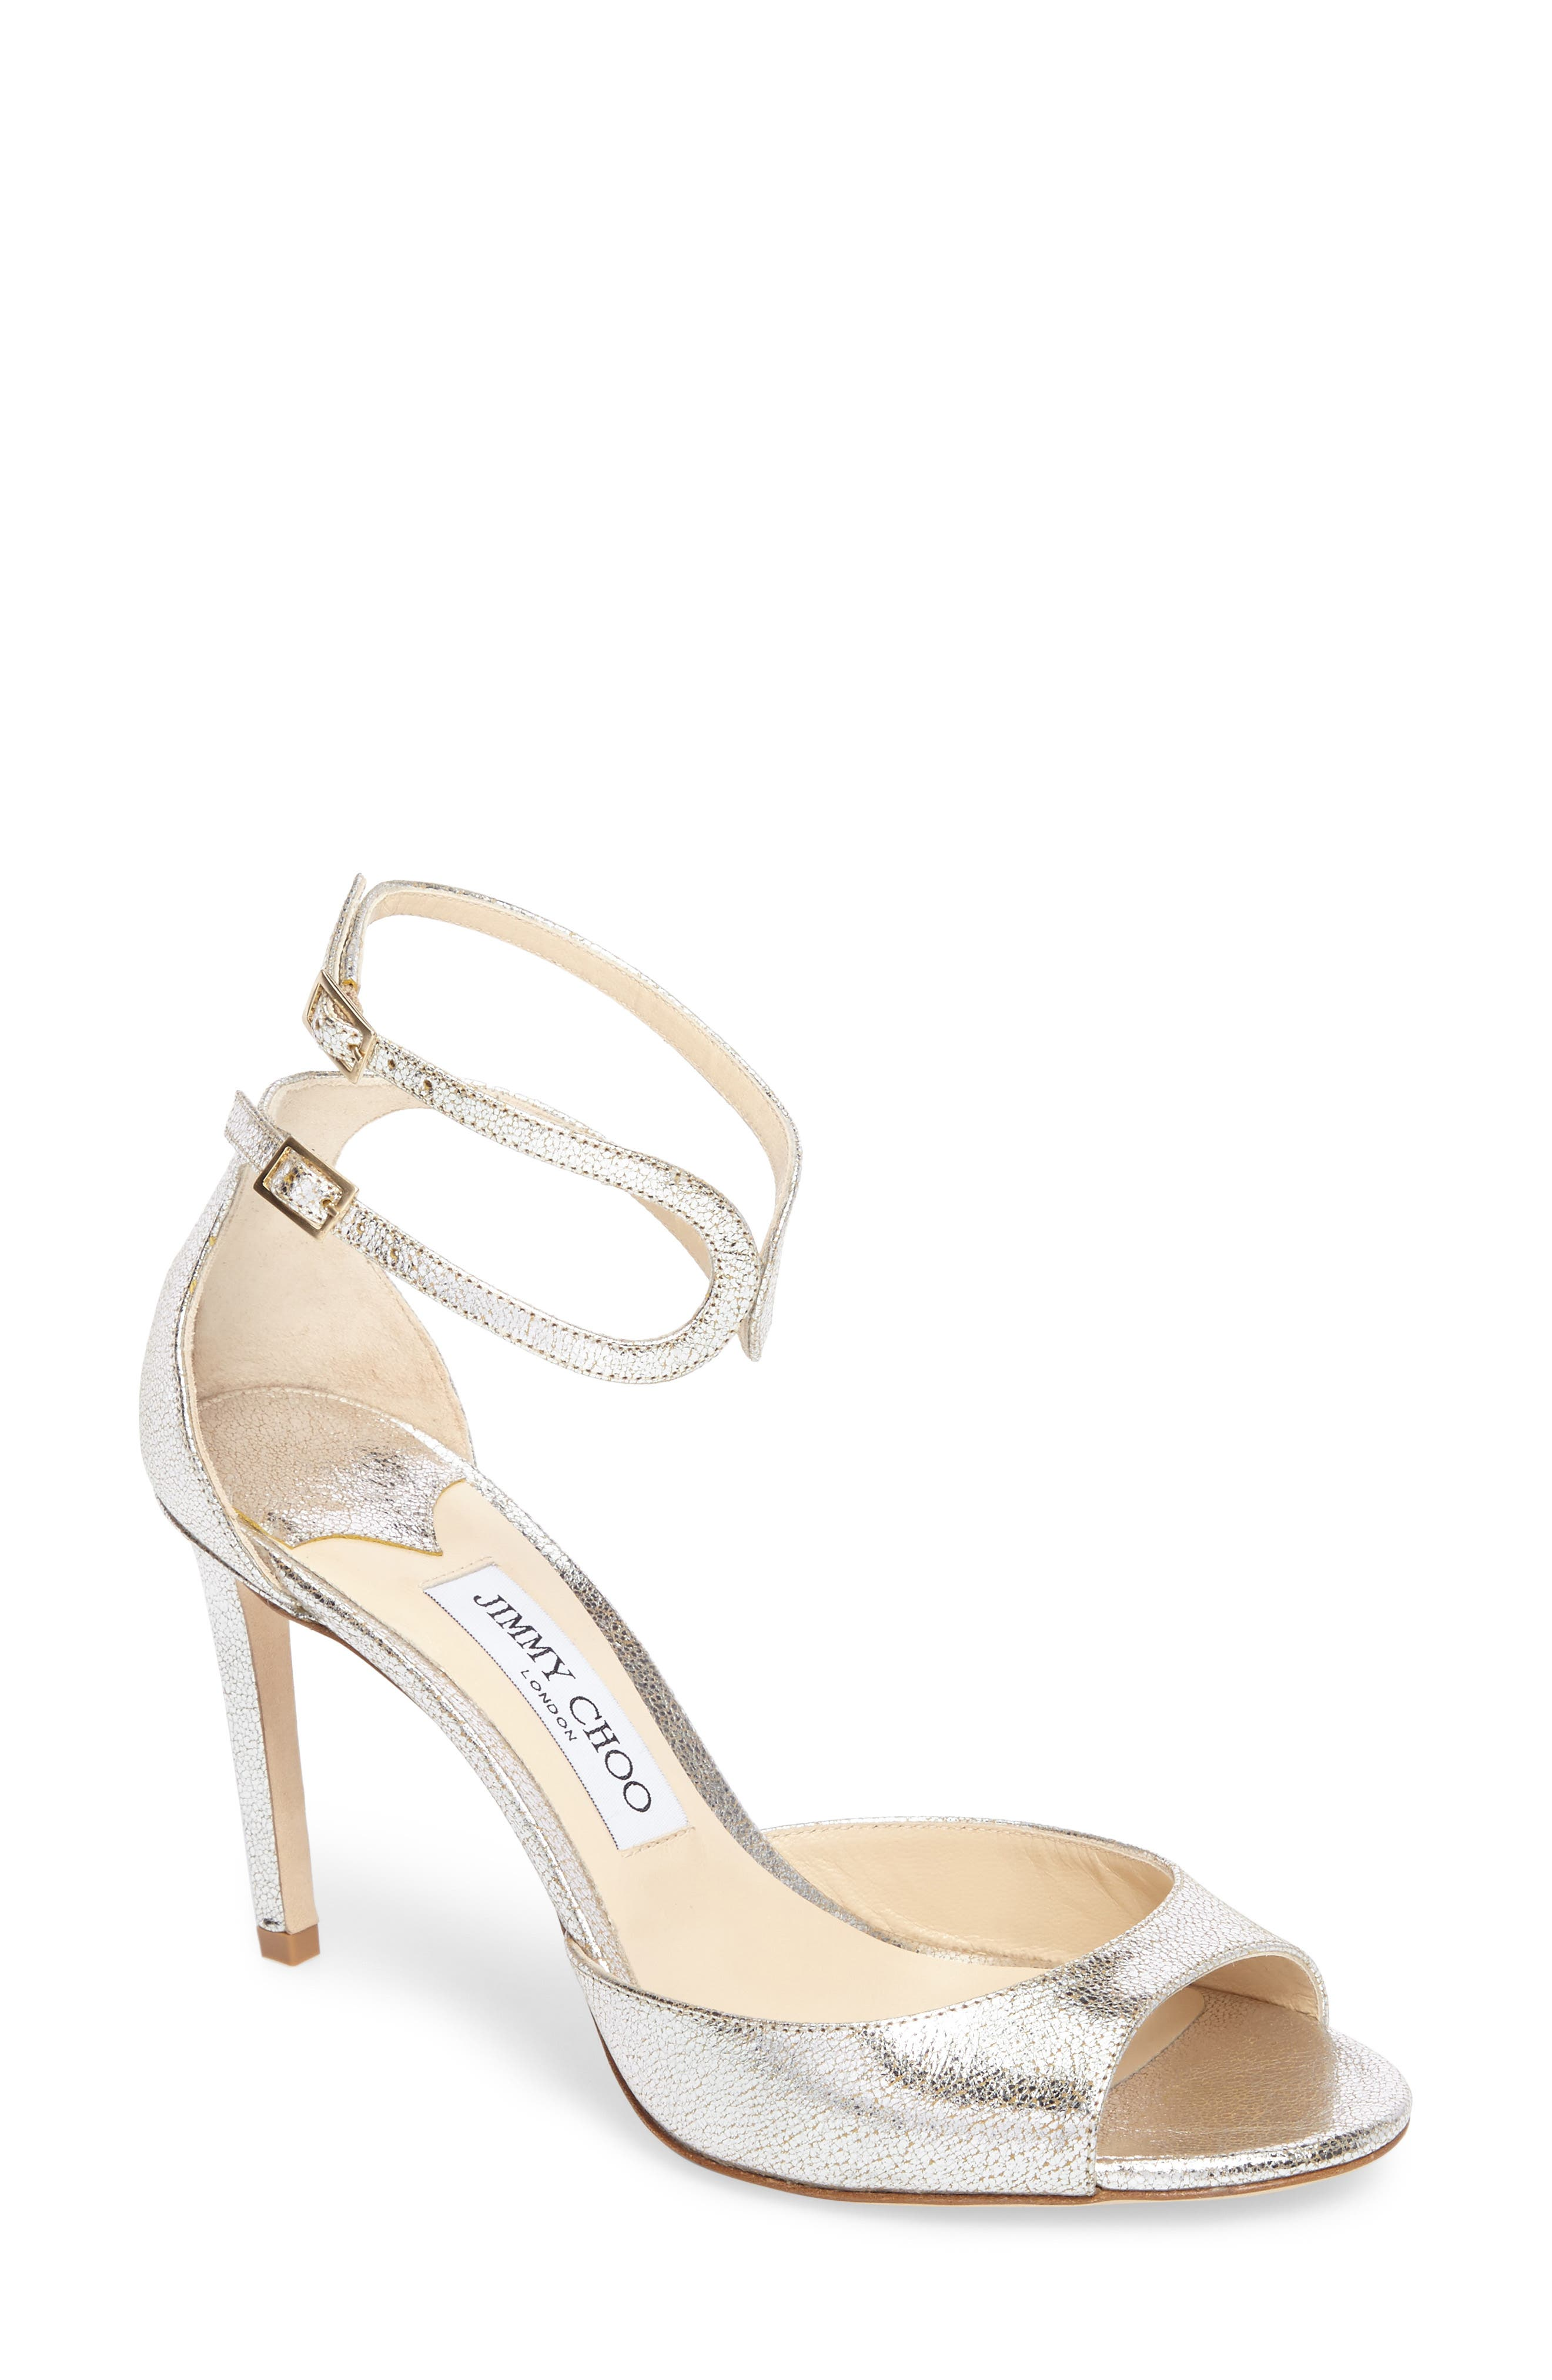 Alternate Image 1 Selected - Jimmy Choo Lane d'Orsay Sandal (Women)